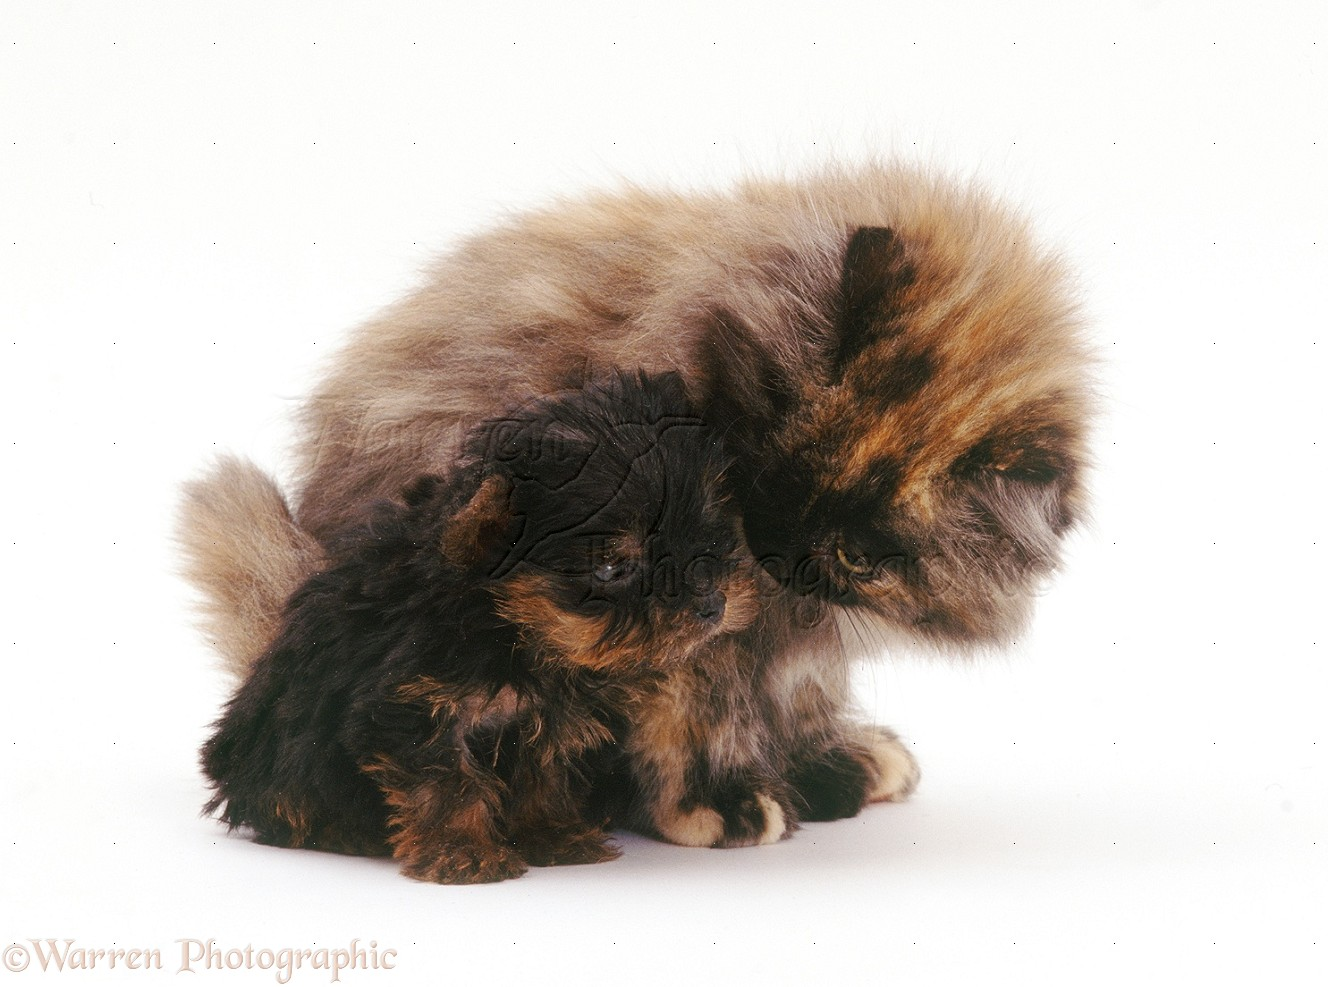 Wp26616 yorkshire terrier pup and fluffy tortoiseshell cat